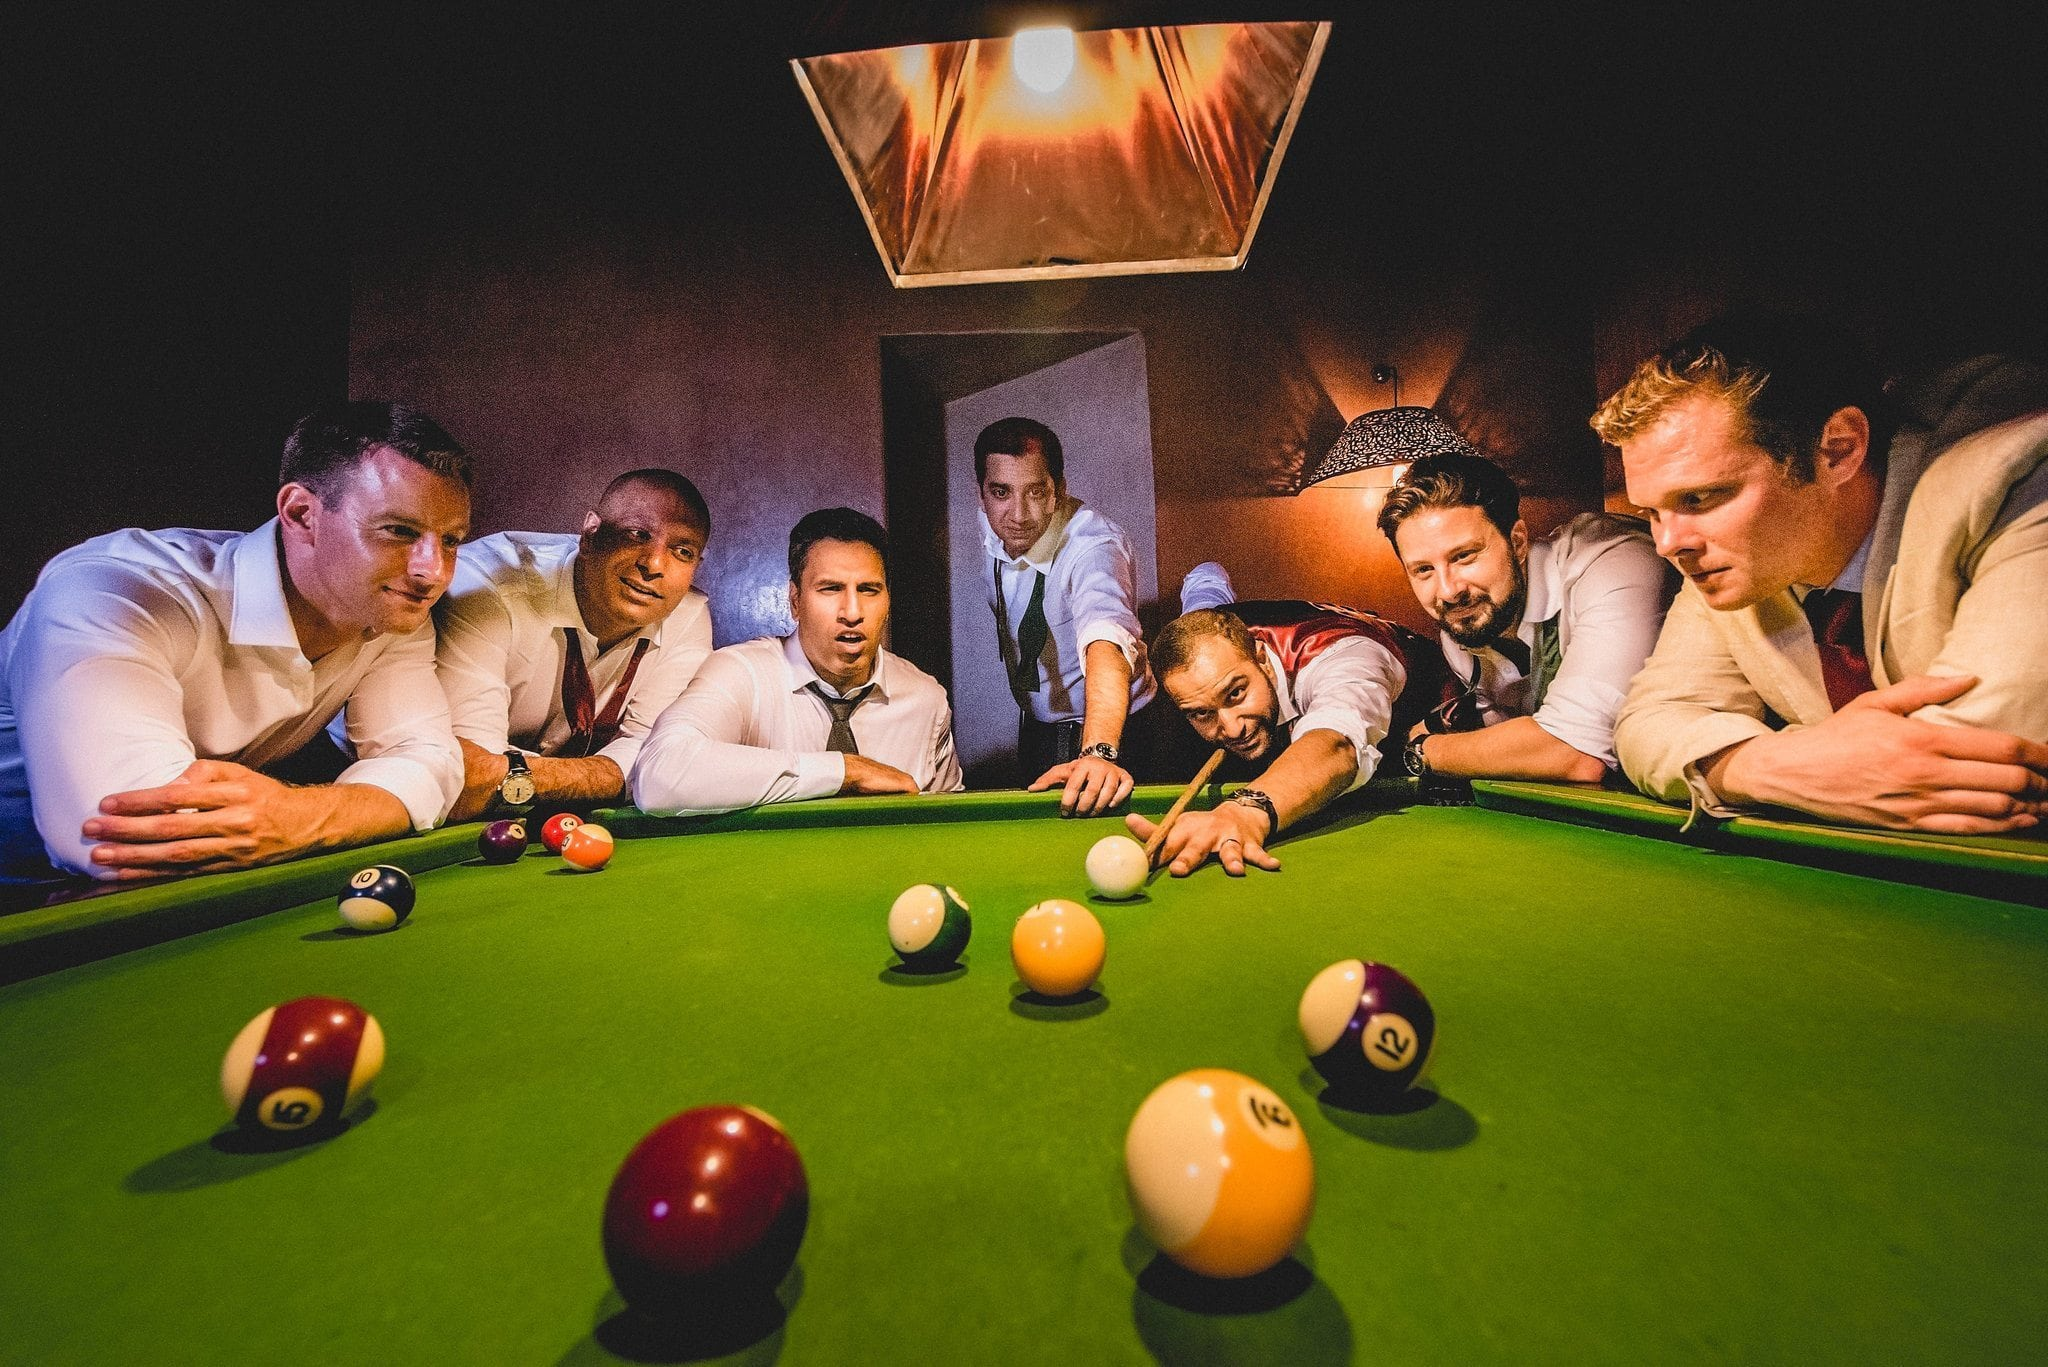 The groomsmen and ushers pose around the pool table as the groom prepares to take a shot